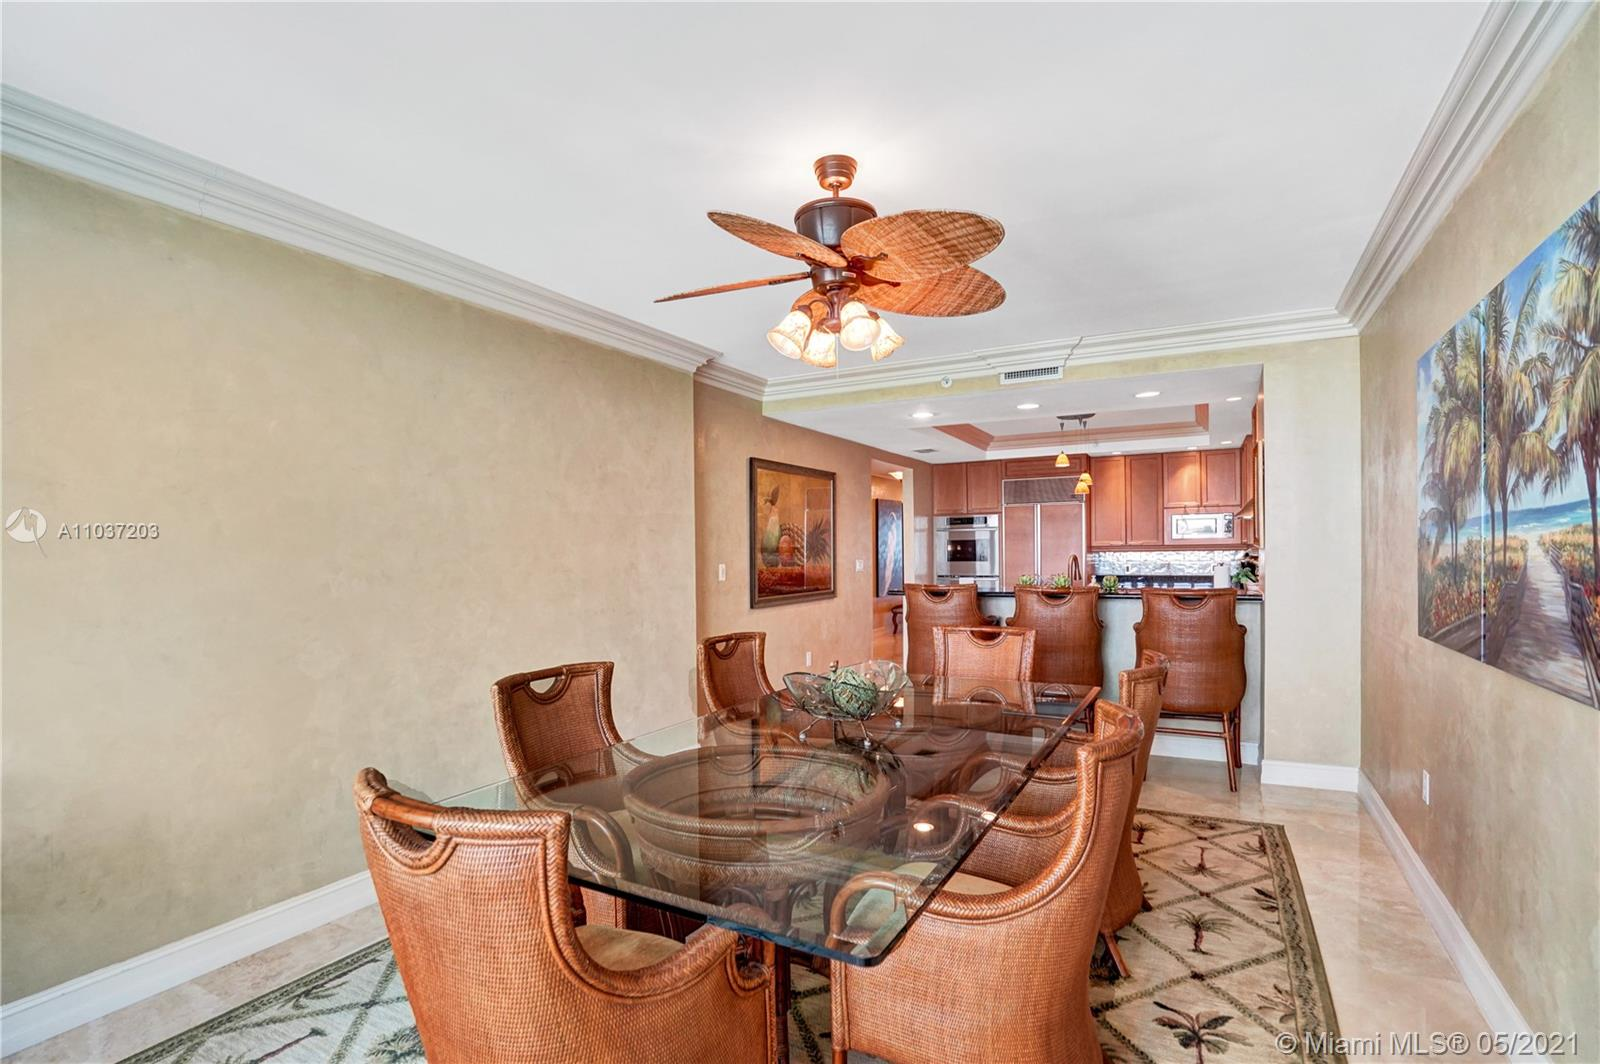 Photo of 20201 Country Club Dr #1006, Aventura, Florida, 33180 - Dining room with magnificent lake and city views.